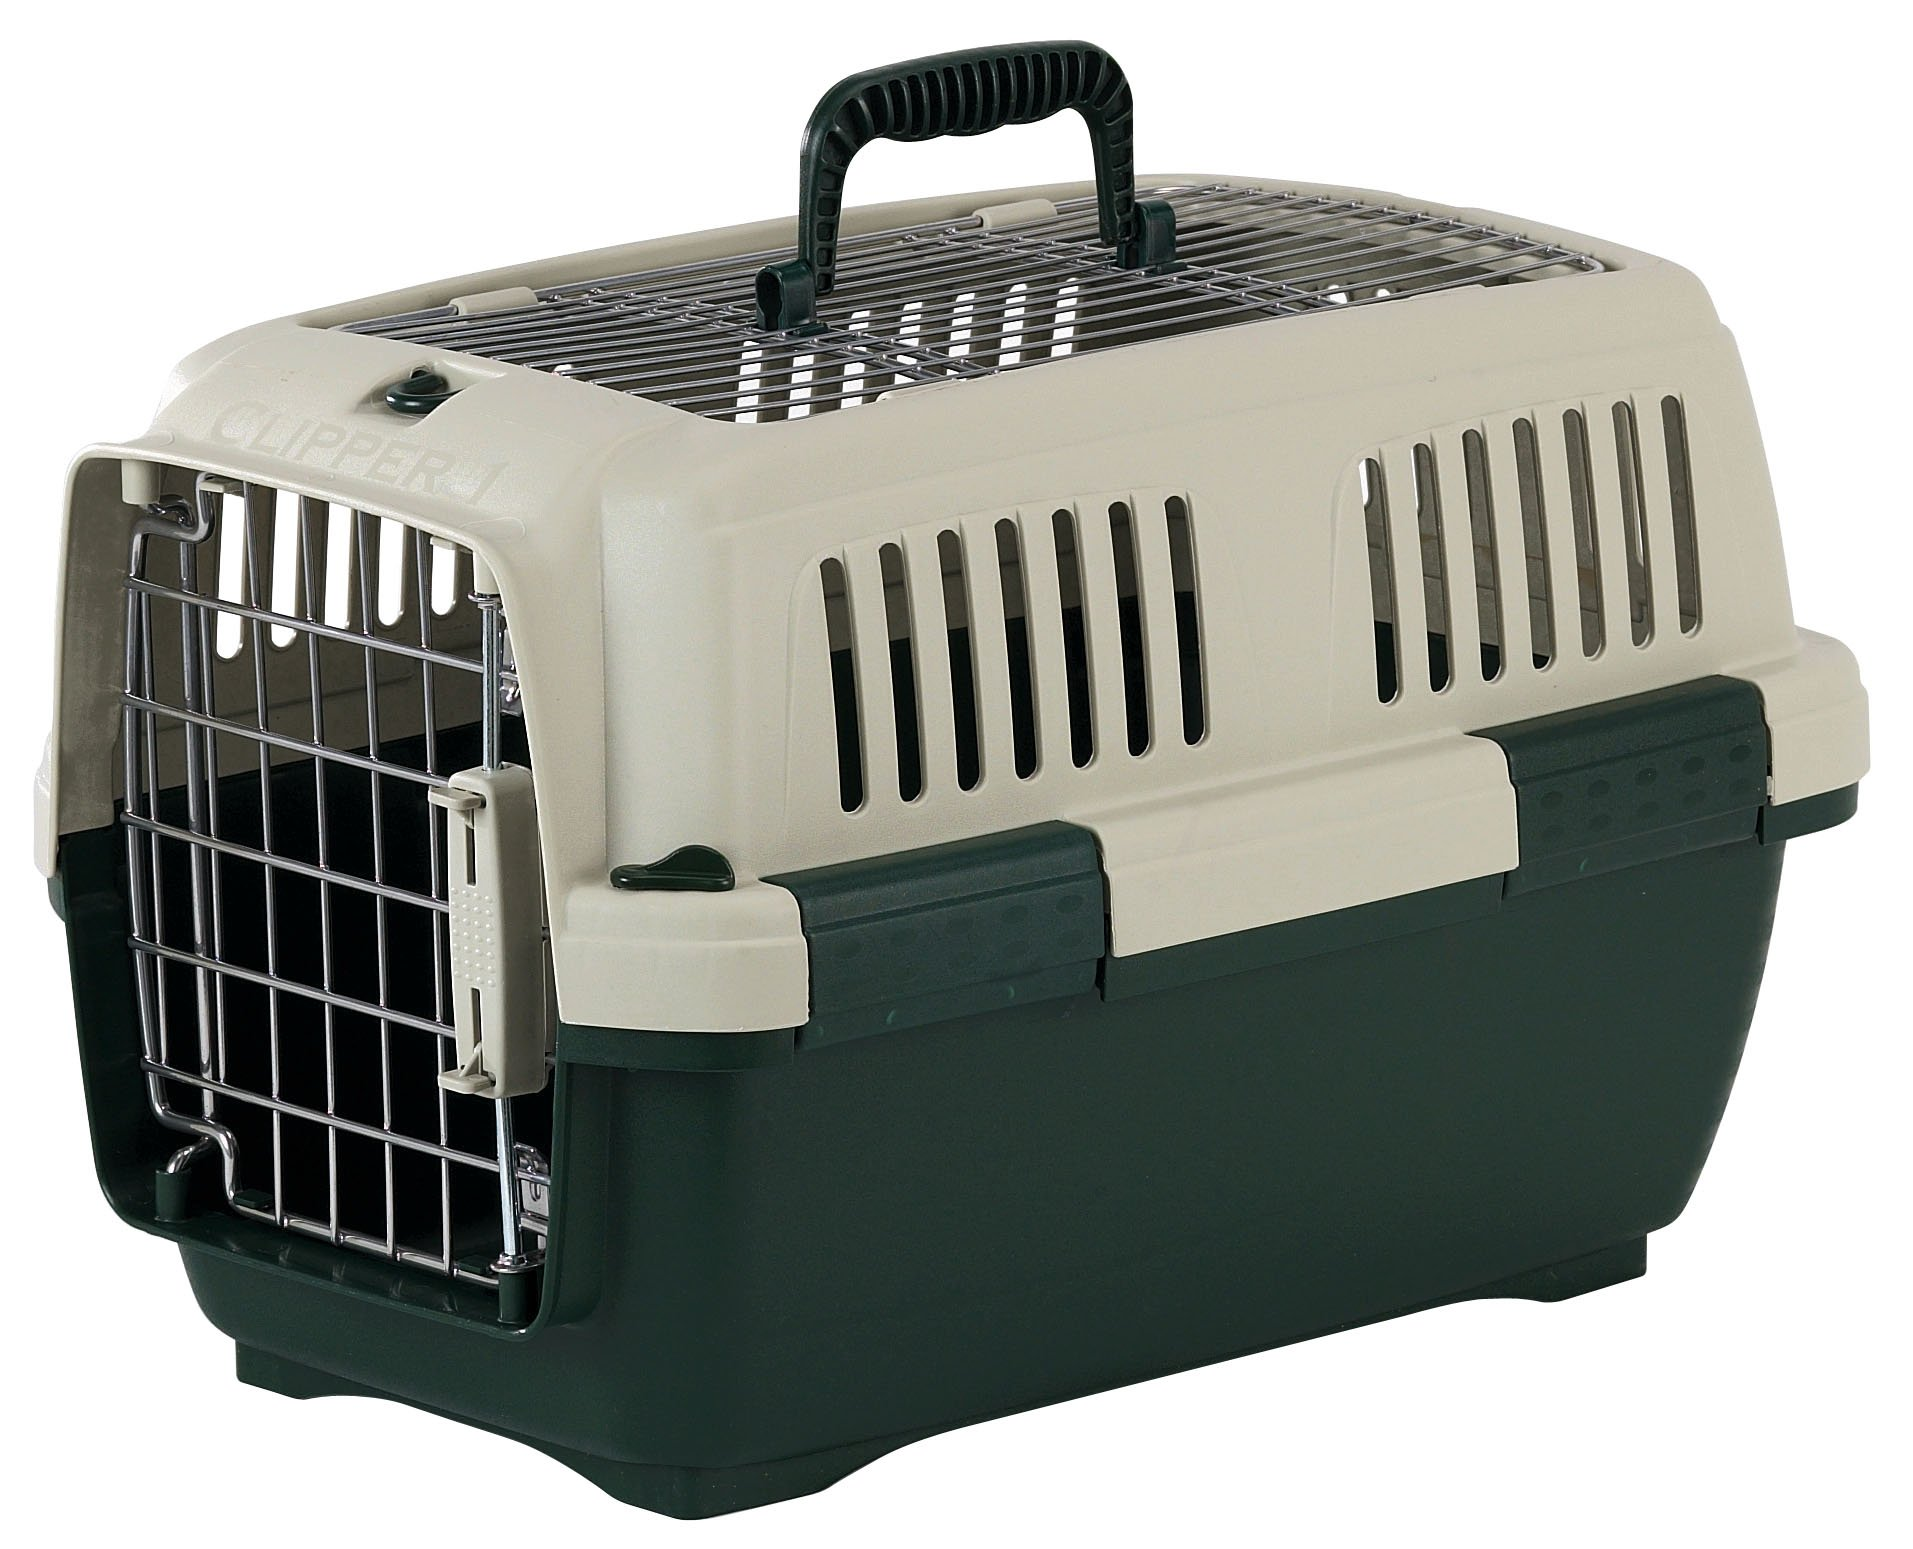 Marchioro Clipper Aran 2 Pet Carrier, 22.25-inches, Tan/Green